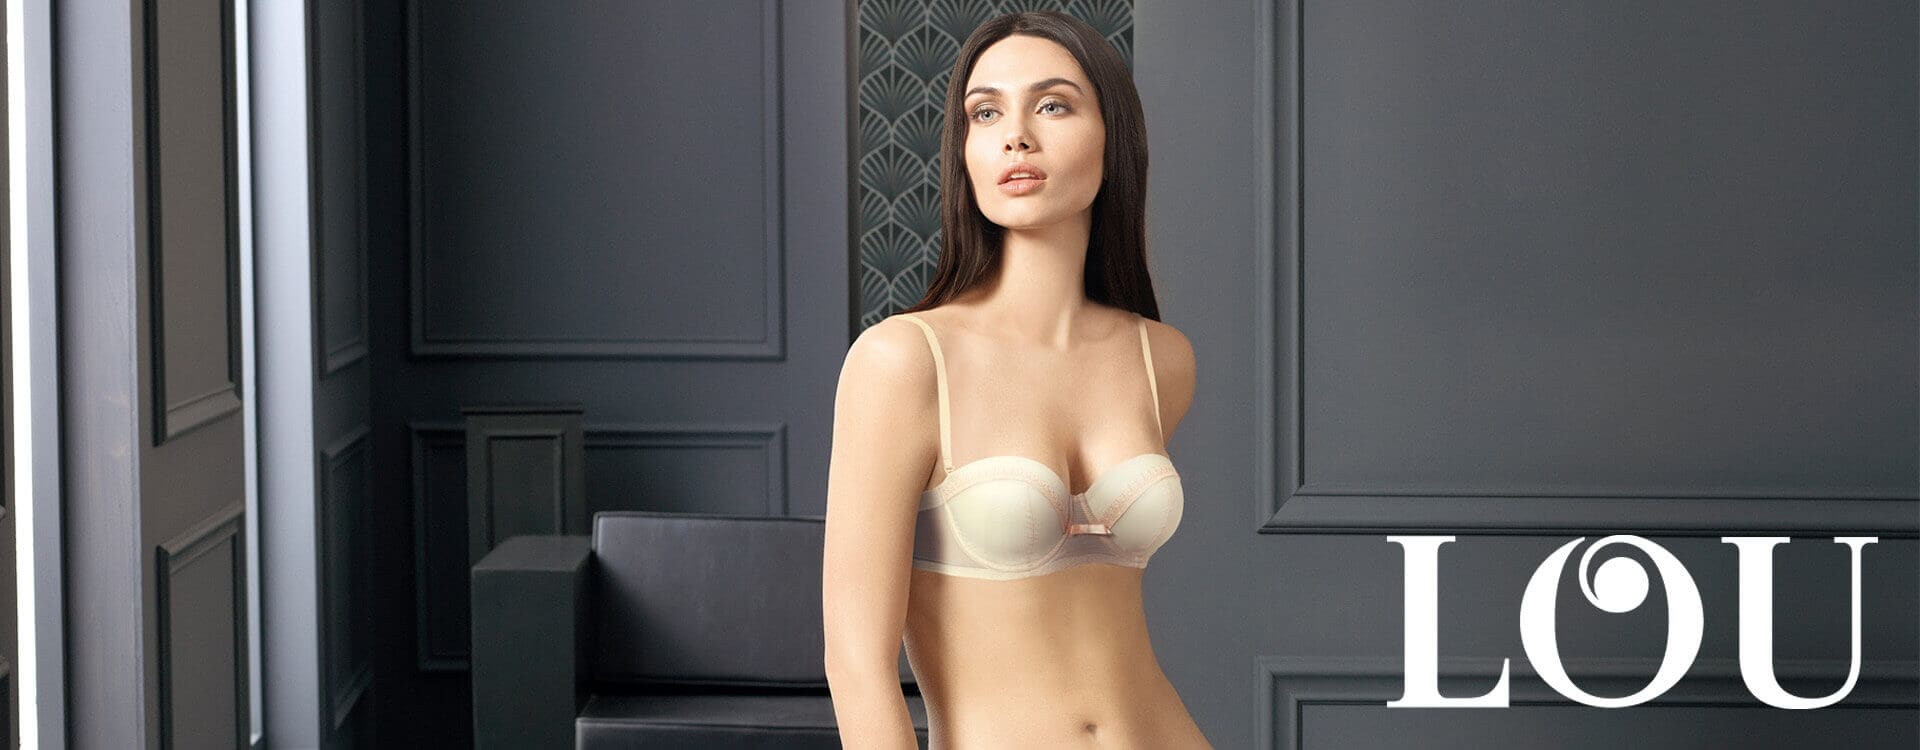 le dernier f7610 b3619 Wholesaler of Premier Lingerie across Australia and New Zealand